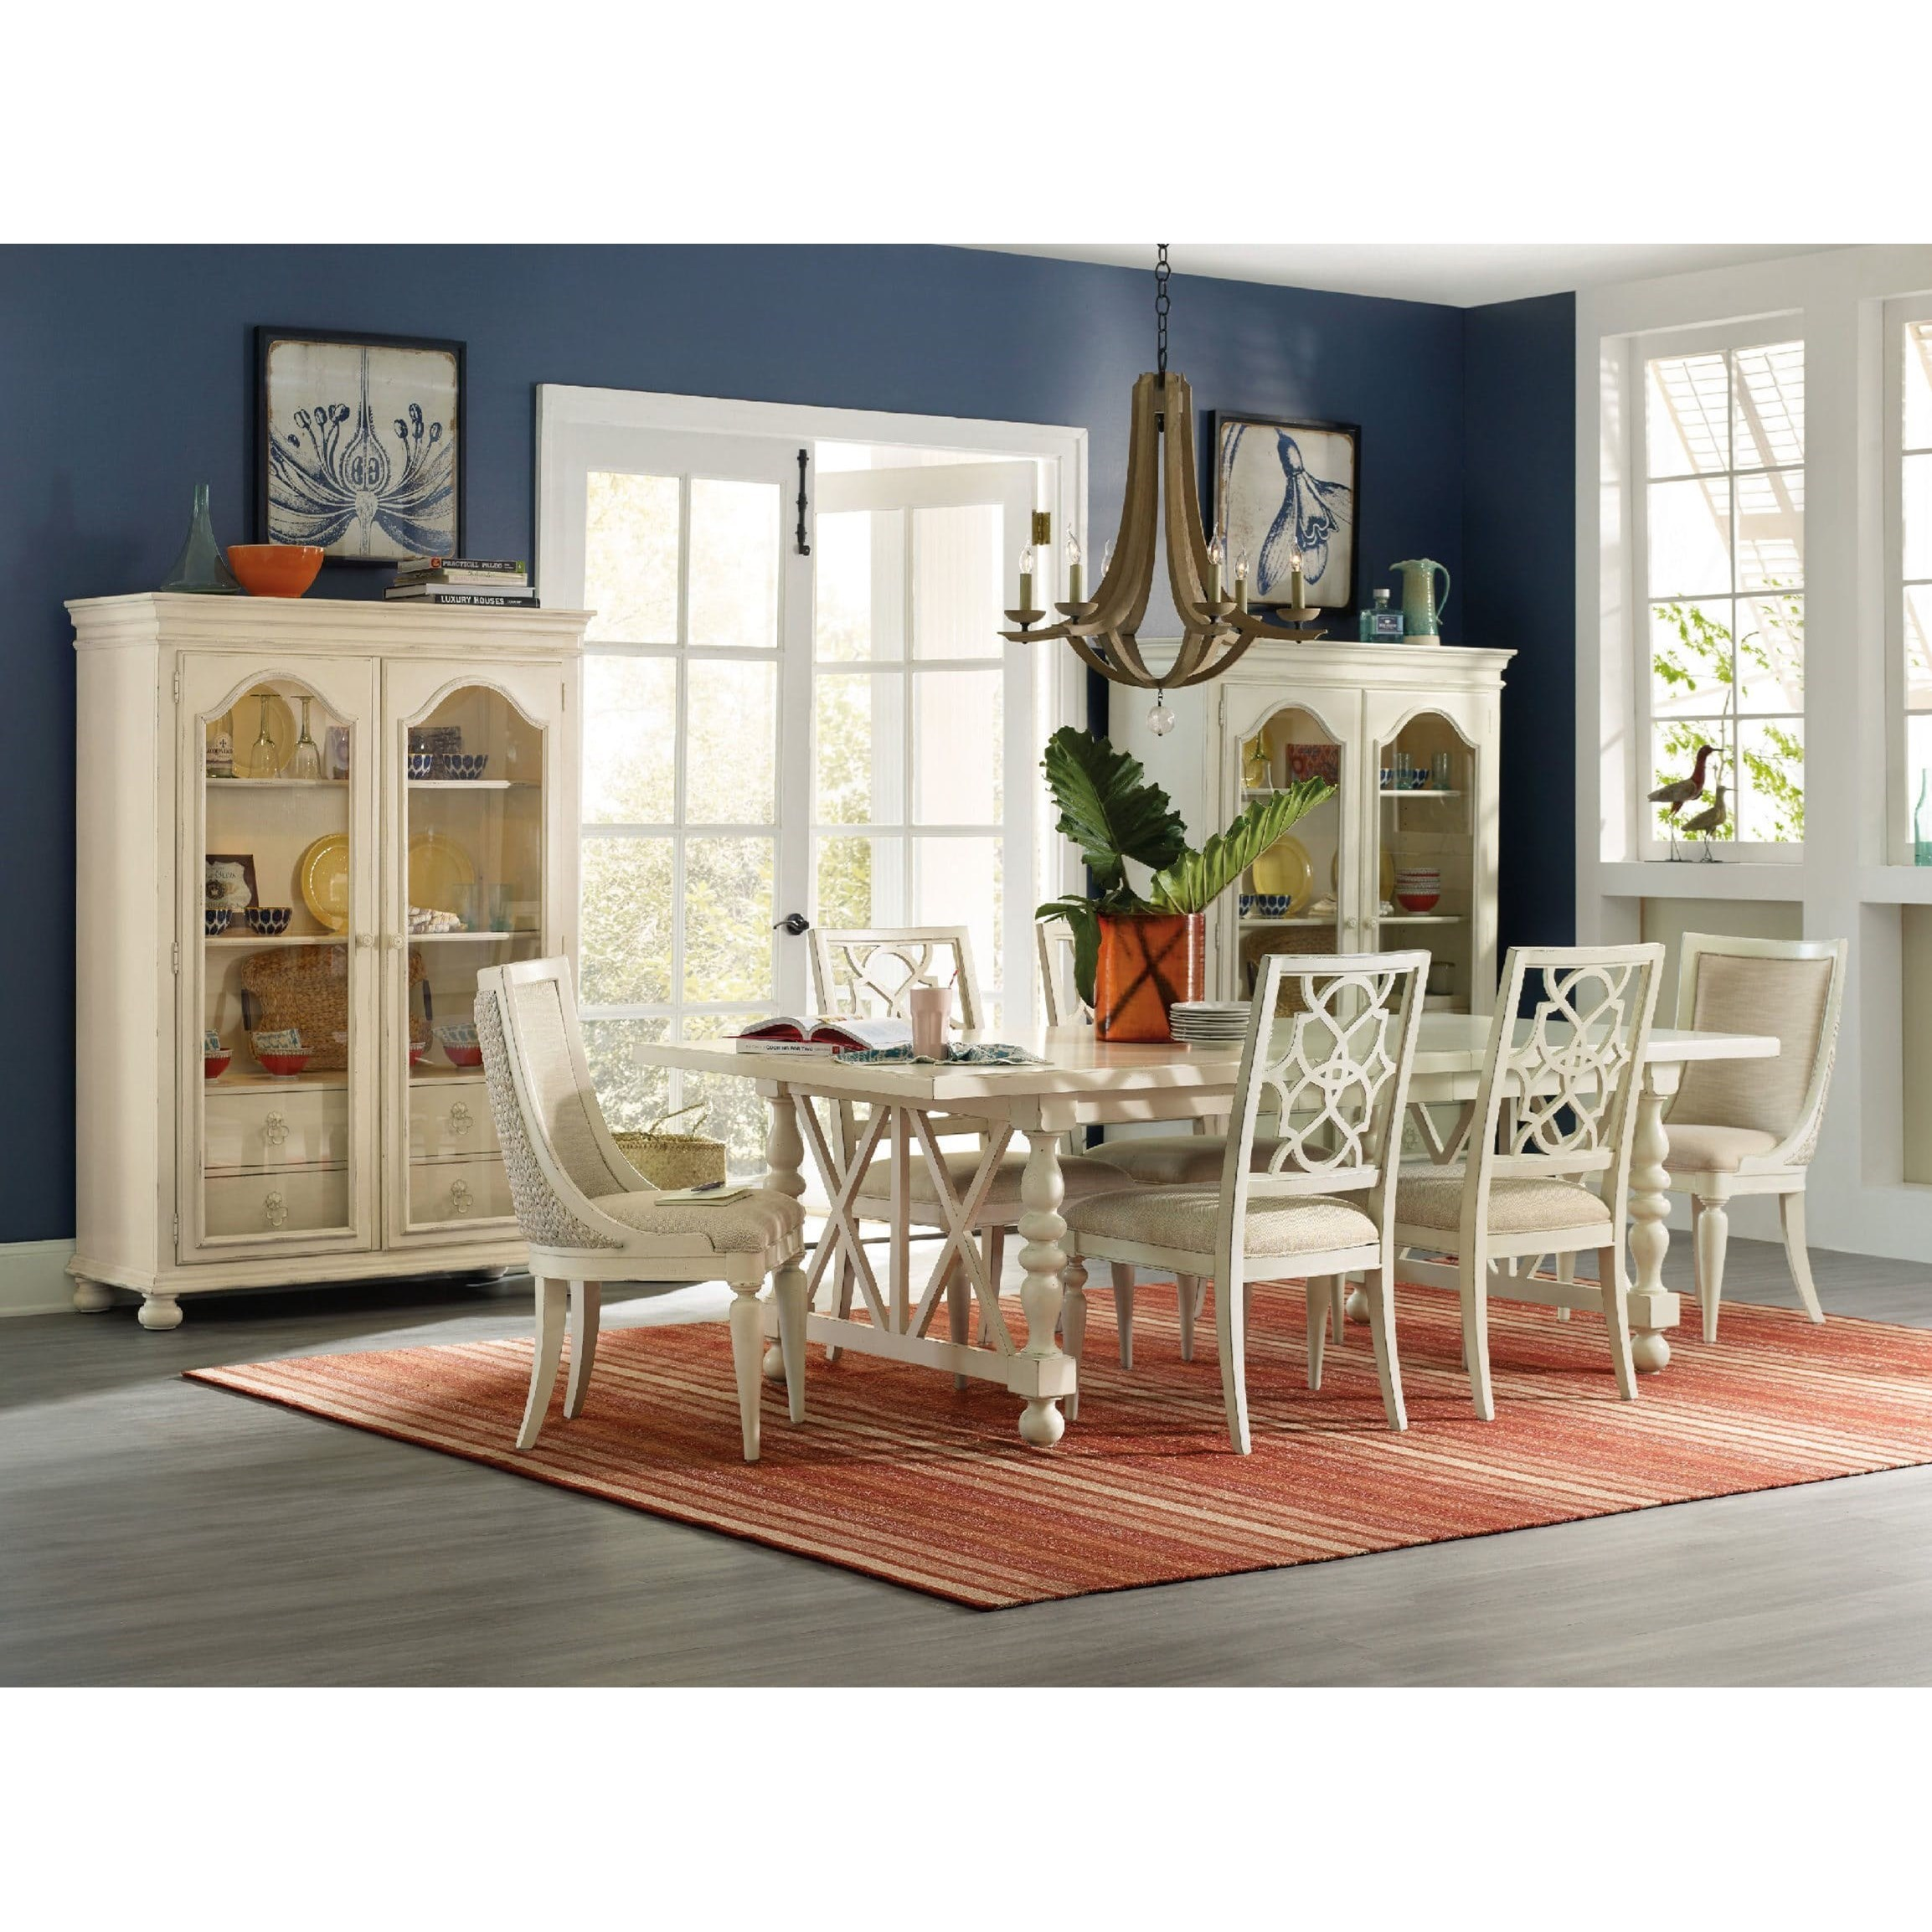 Hooker Furniture Sandcastle Dining Room Group